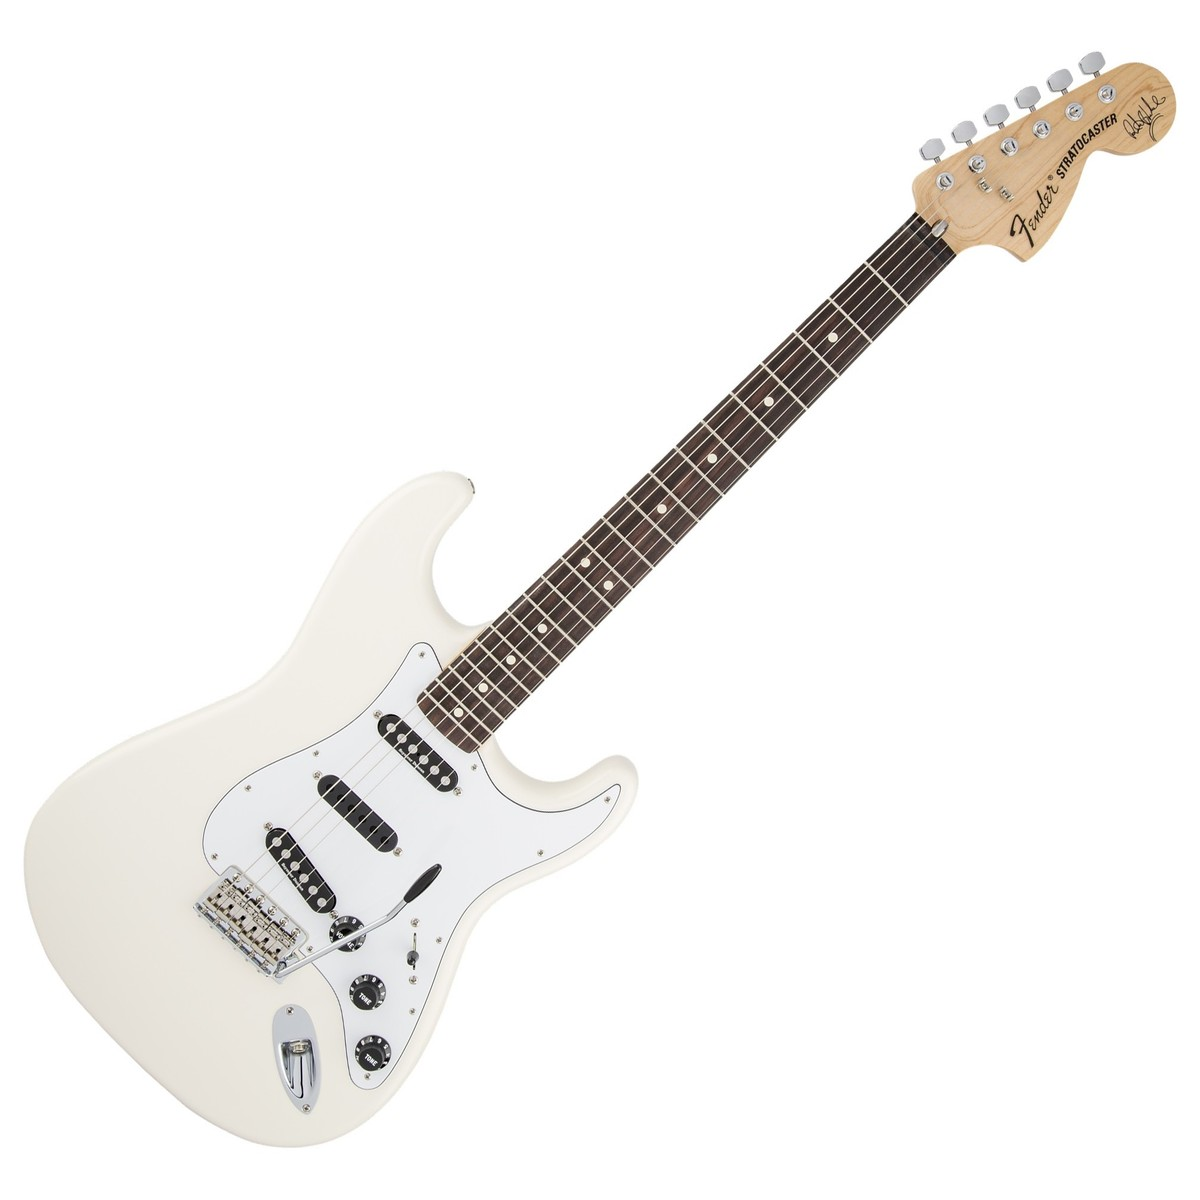 hight resolution of fender ritchie blackmore stratocaster electric guitar olympic white loading zoom